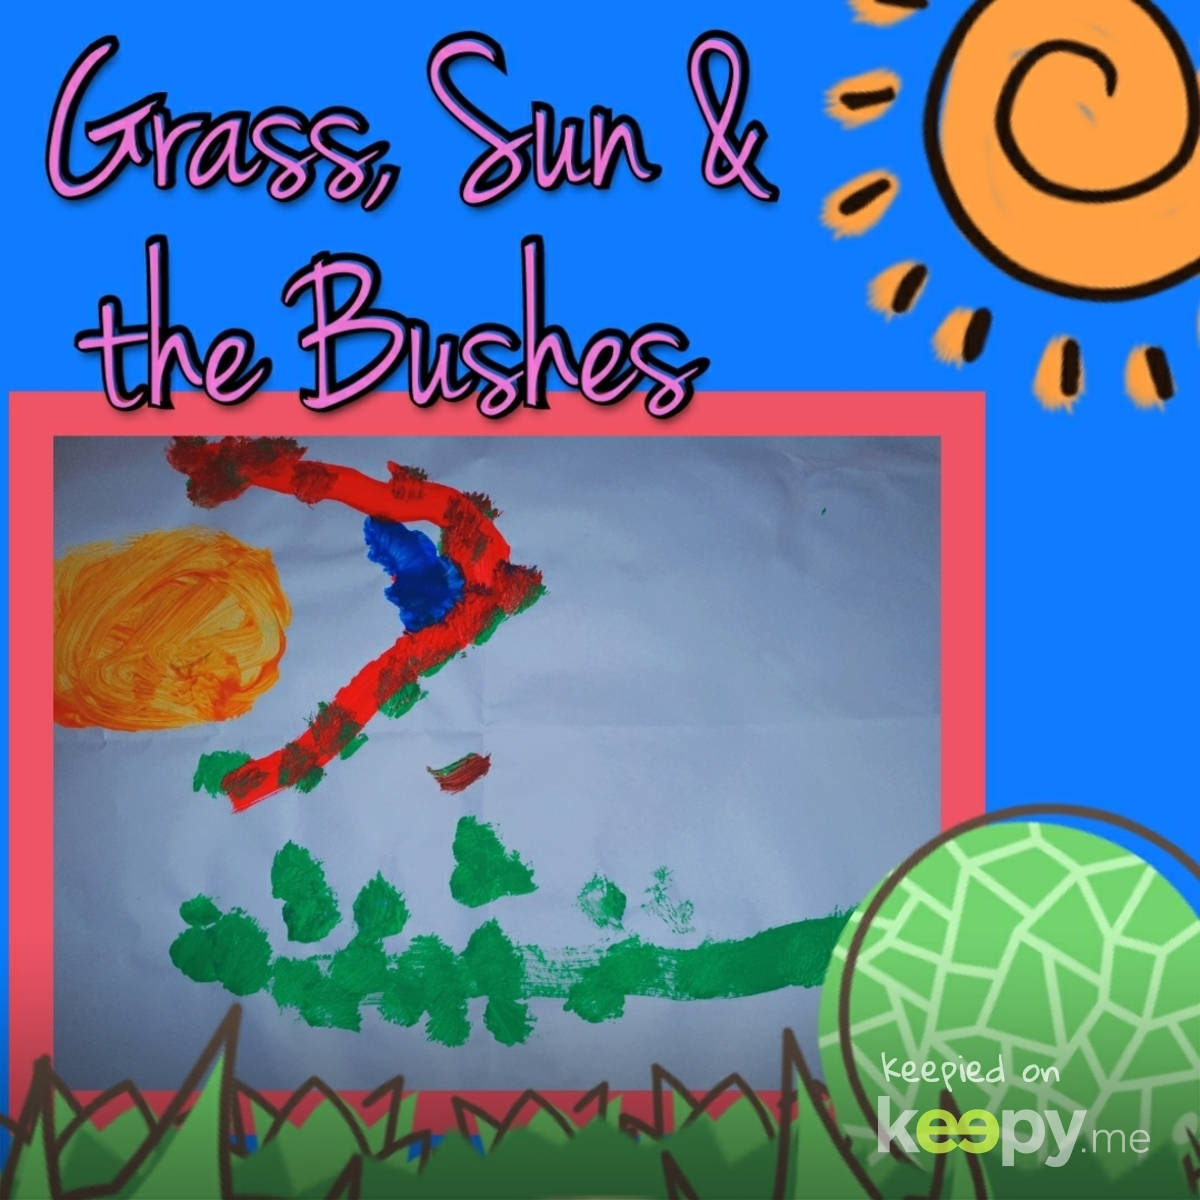 Charli's painting of Grass, Sun & Bushes 🌱🌞🌳